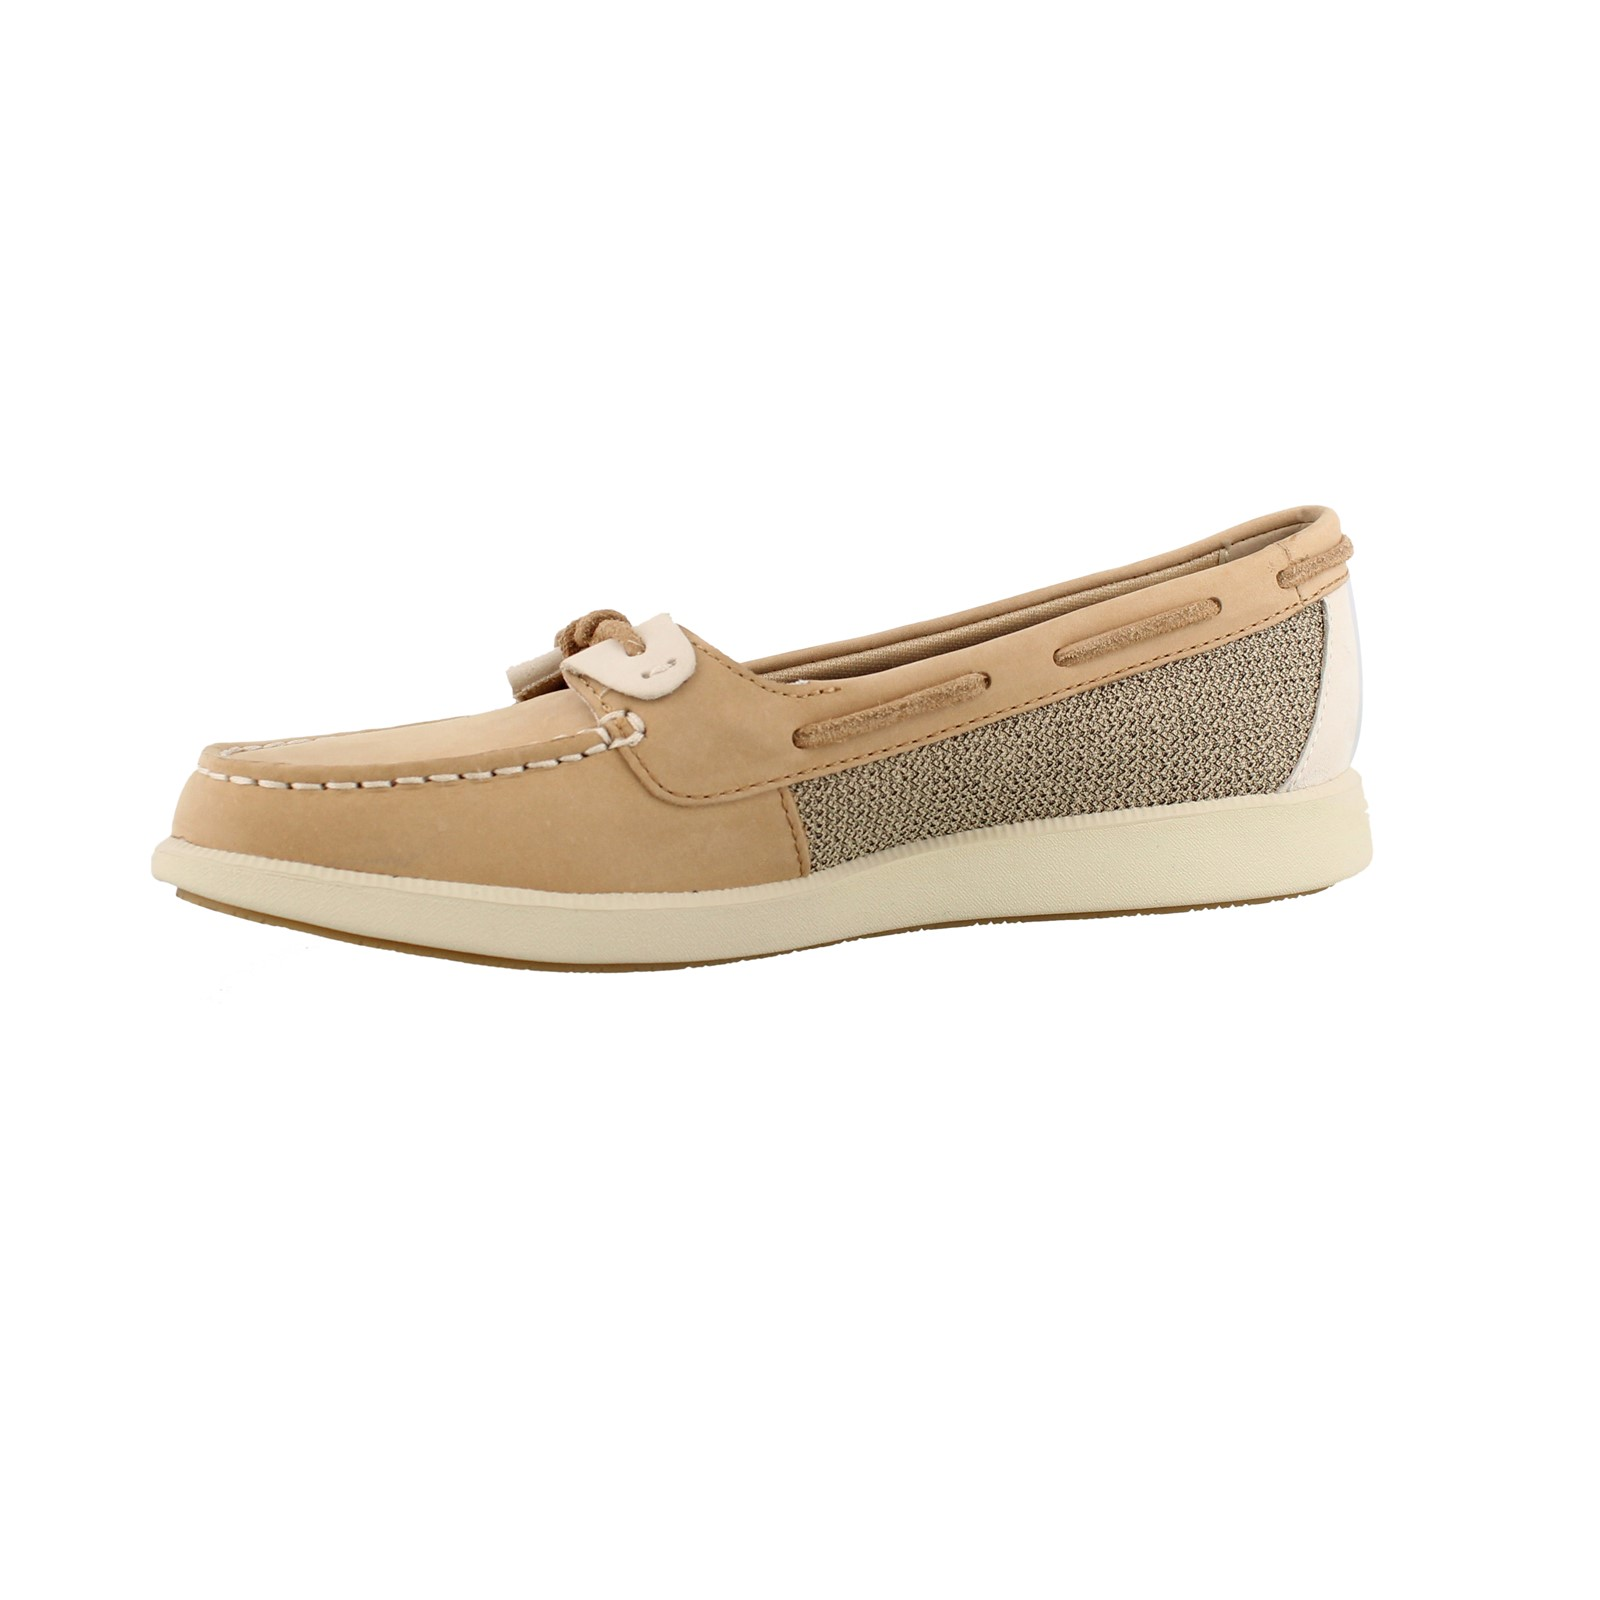 459ac4af2 Next. add to favorites. Women's Sperry, Oasis Loft Boat Shoes